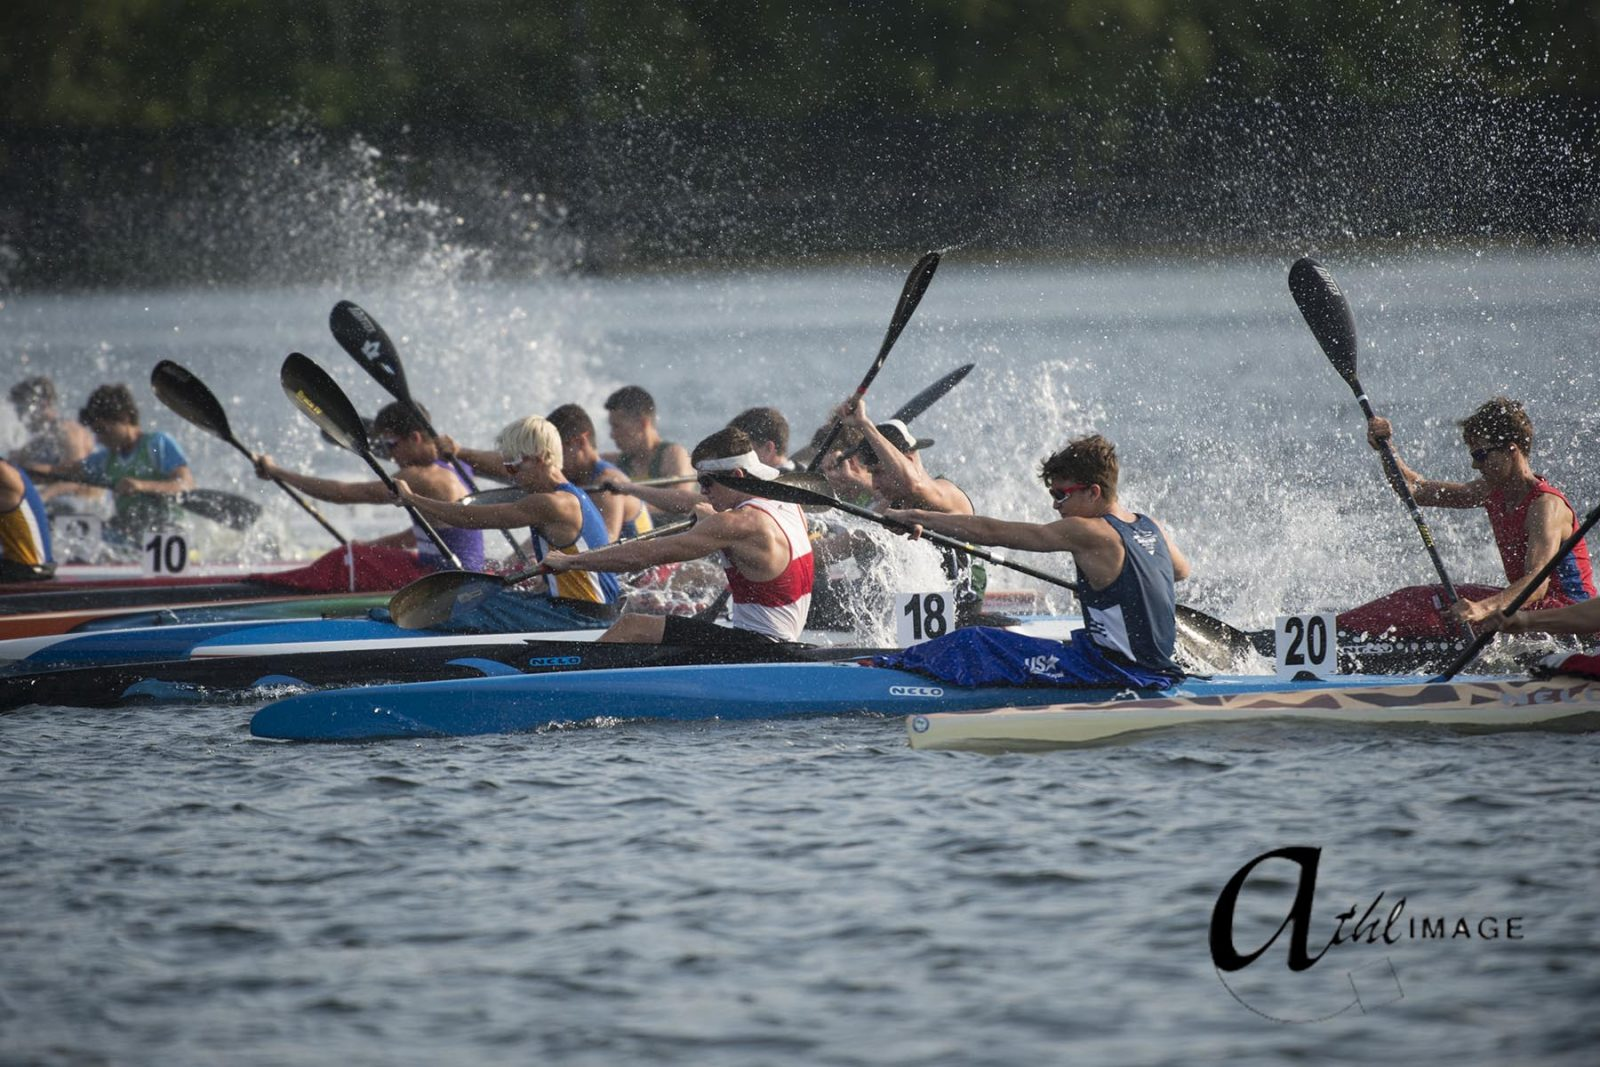 Canadian Sprint Canoe-Kayak Championships continues  throughout the weekend